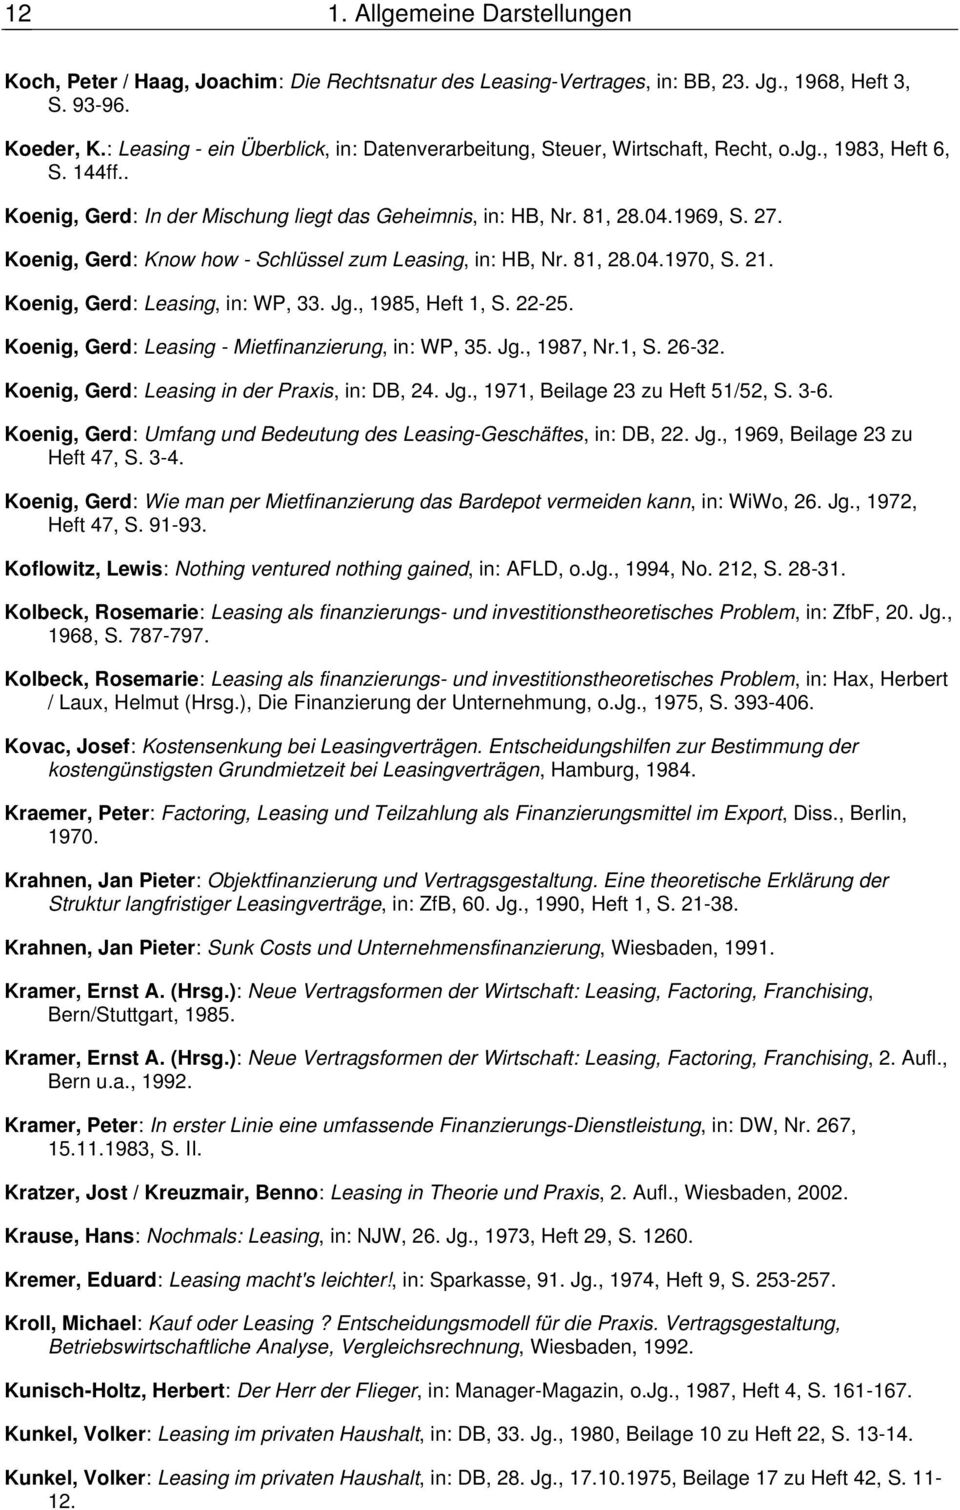 Koenig, Gerd: Know how - Schlüssel zum Leasing, in: HB, Nr. 81, 28.04.1970, S. 21. Koenig, Gerd: Leasing, in: WP, 33. Jg., 1985, Heft 1, S. 22-25. Koenig, Gerd: Leasing - Mietfinanzierung, in: WP, 35.